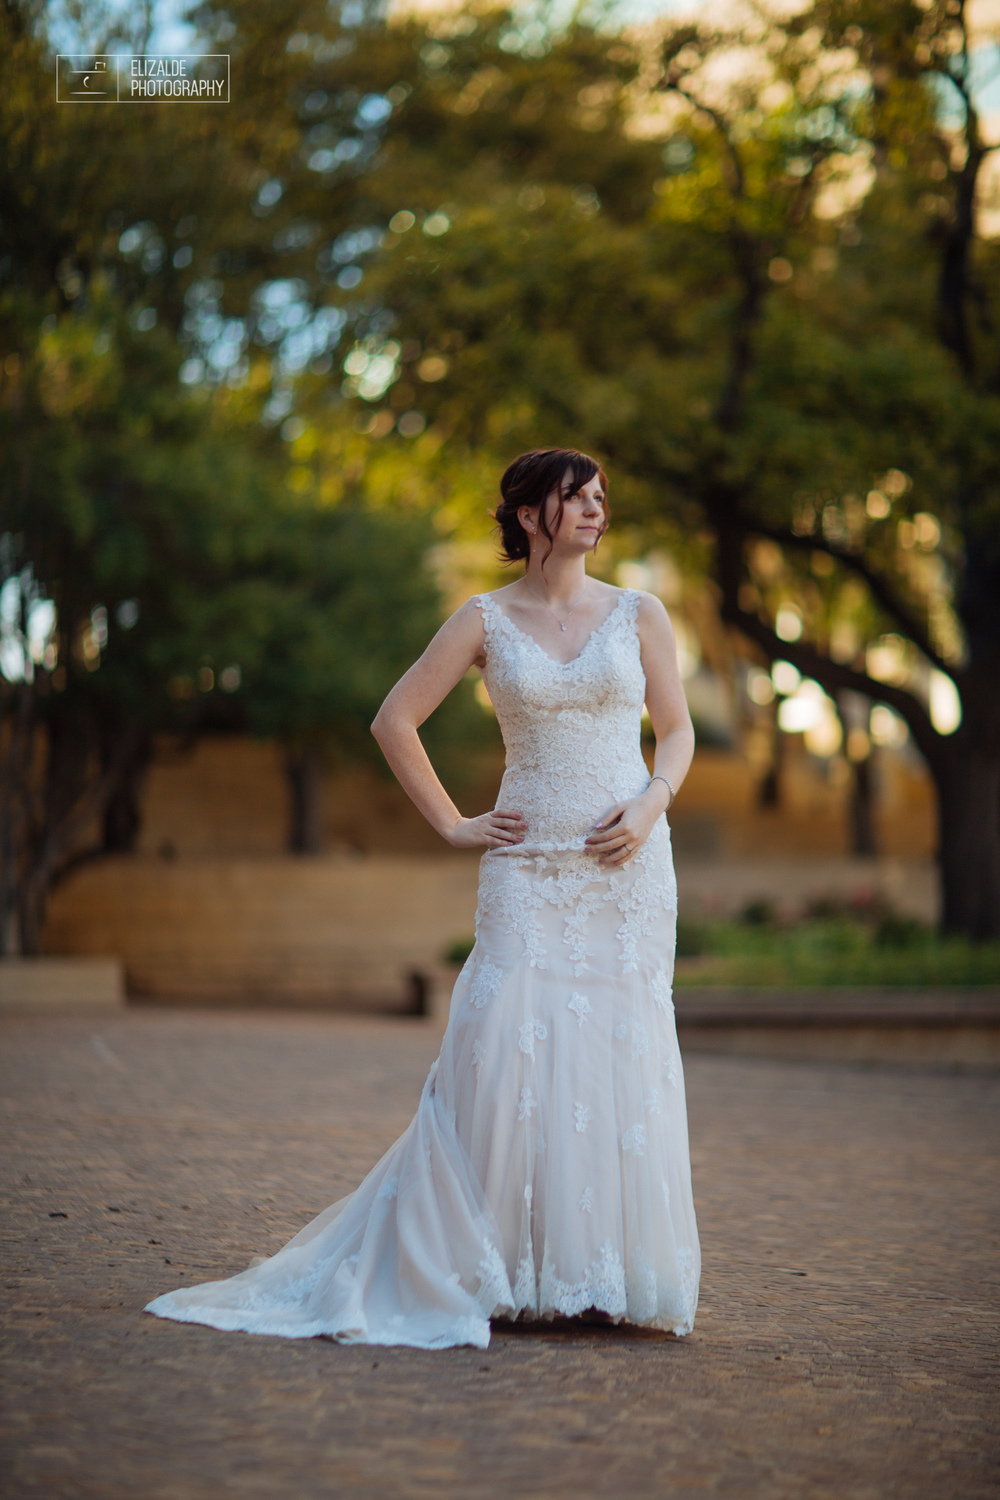 Kelly_Bridals_Omni_DFW_wedding_blog-12.jpg